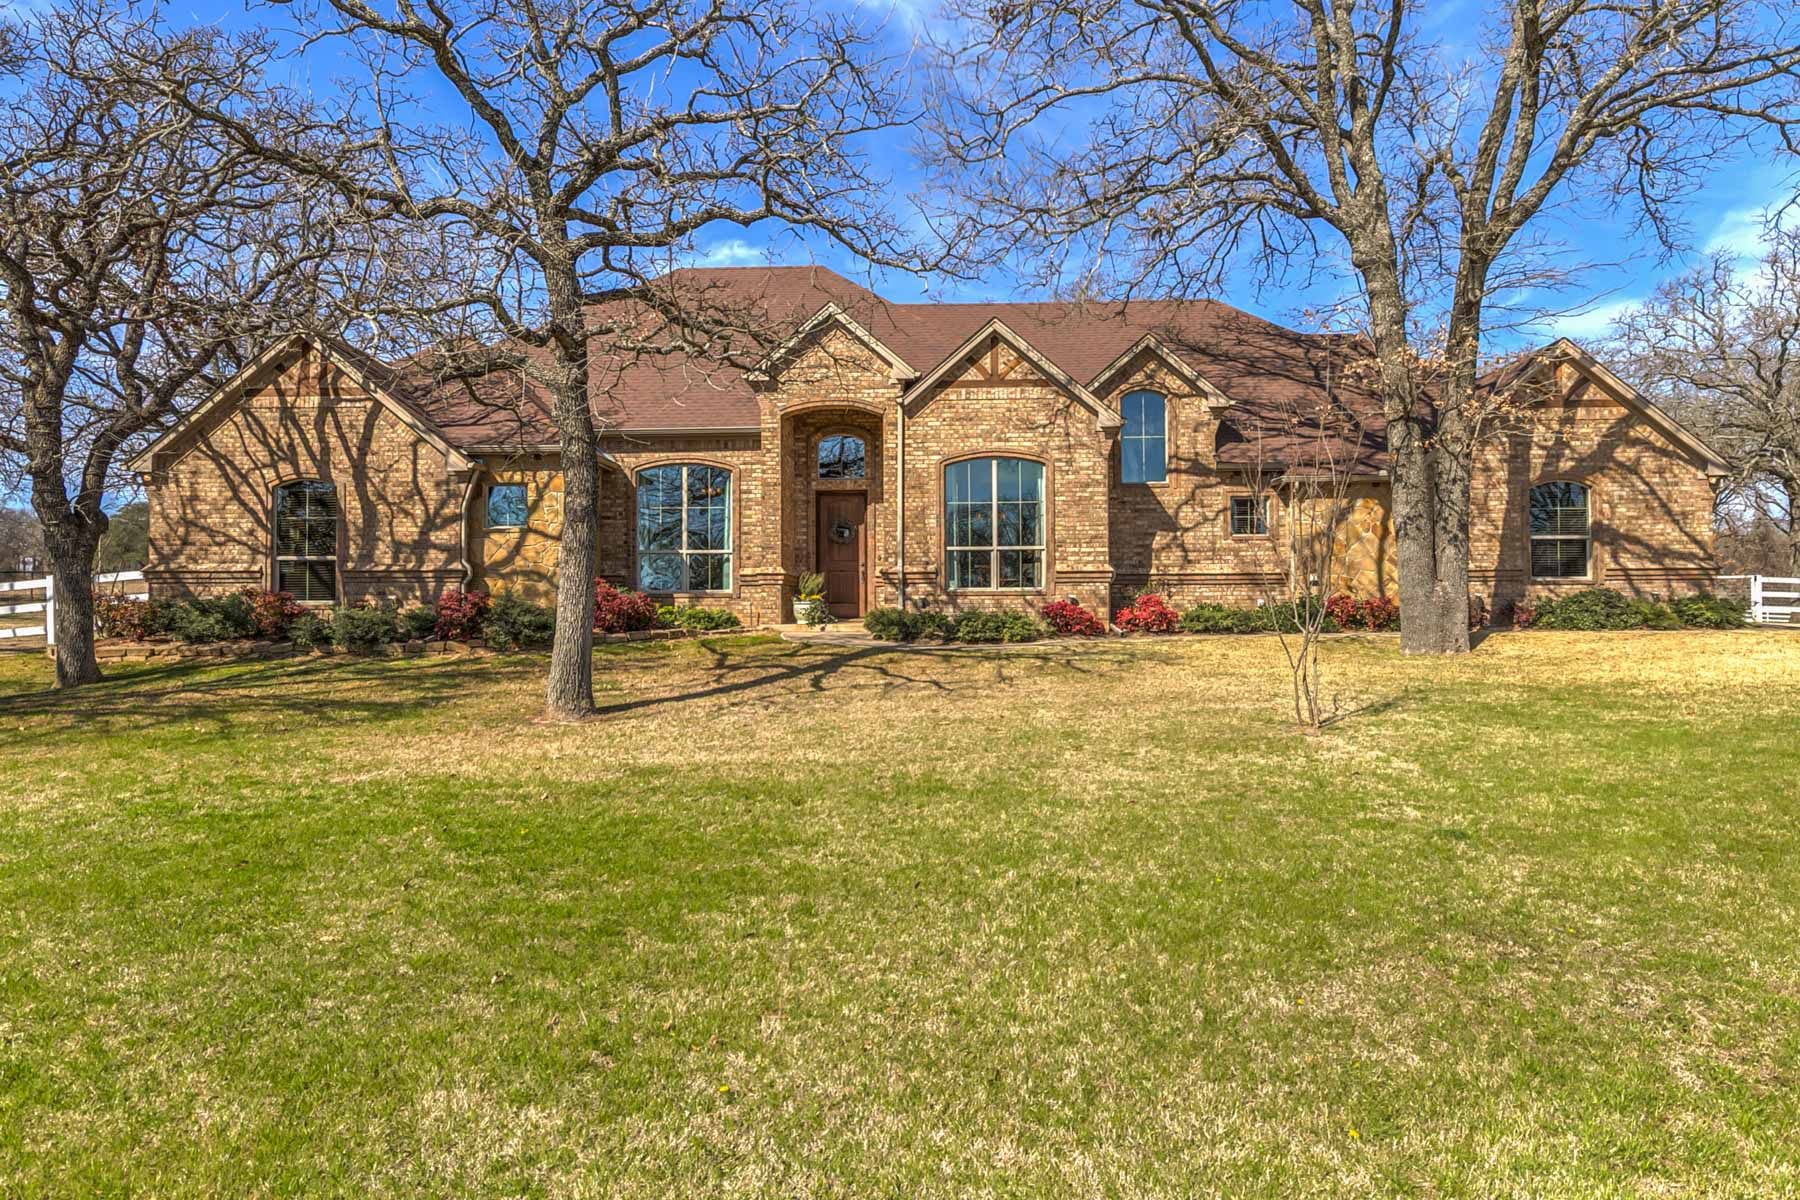 Vivienda unifamiliar por un Venta en 210 Pack Saddle Trail, Weatherford 210 Pack Saddle Trl Weatherford, Texas 76088 Estados Unidos